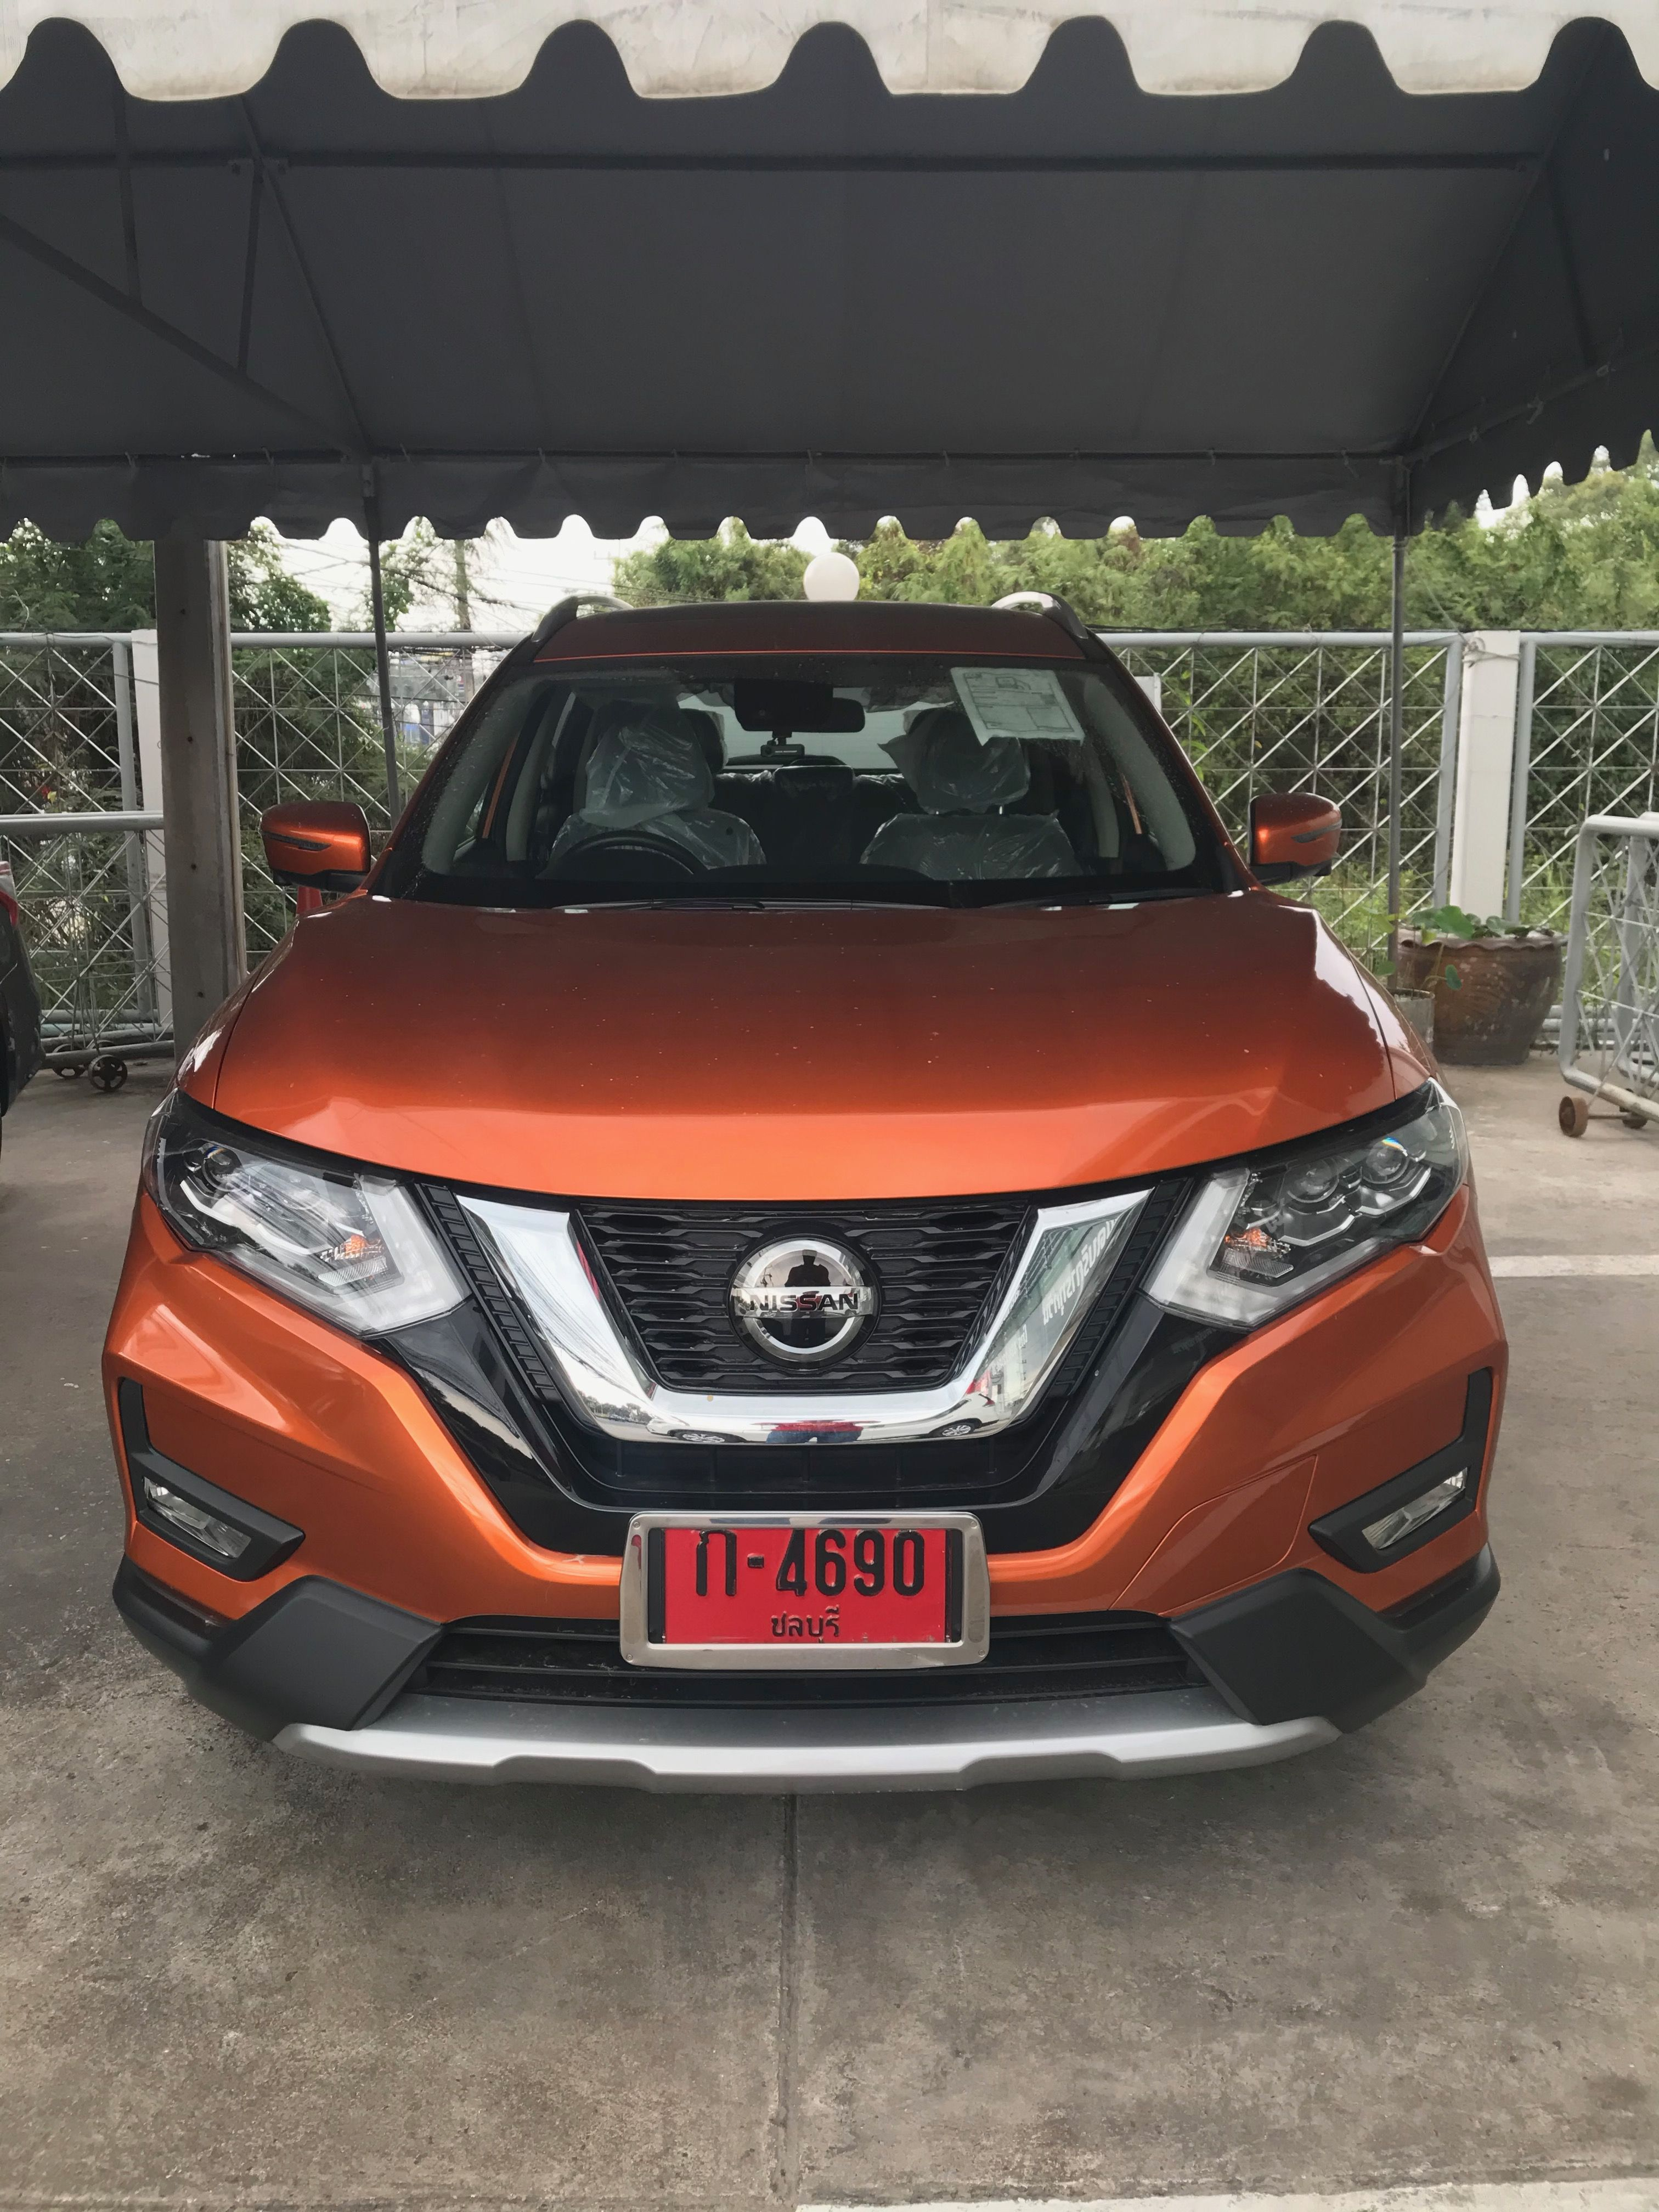 Nissan X Trail 2 5vl 4wd 2020 37 Lakh Real Life Review In 2020 Nissan Nissan Xtrail Crossover Suv